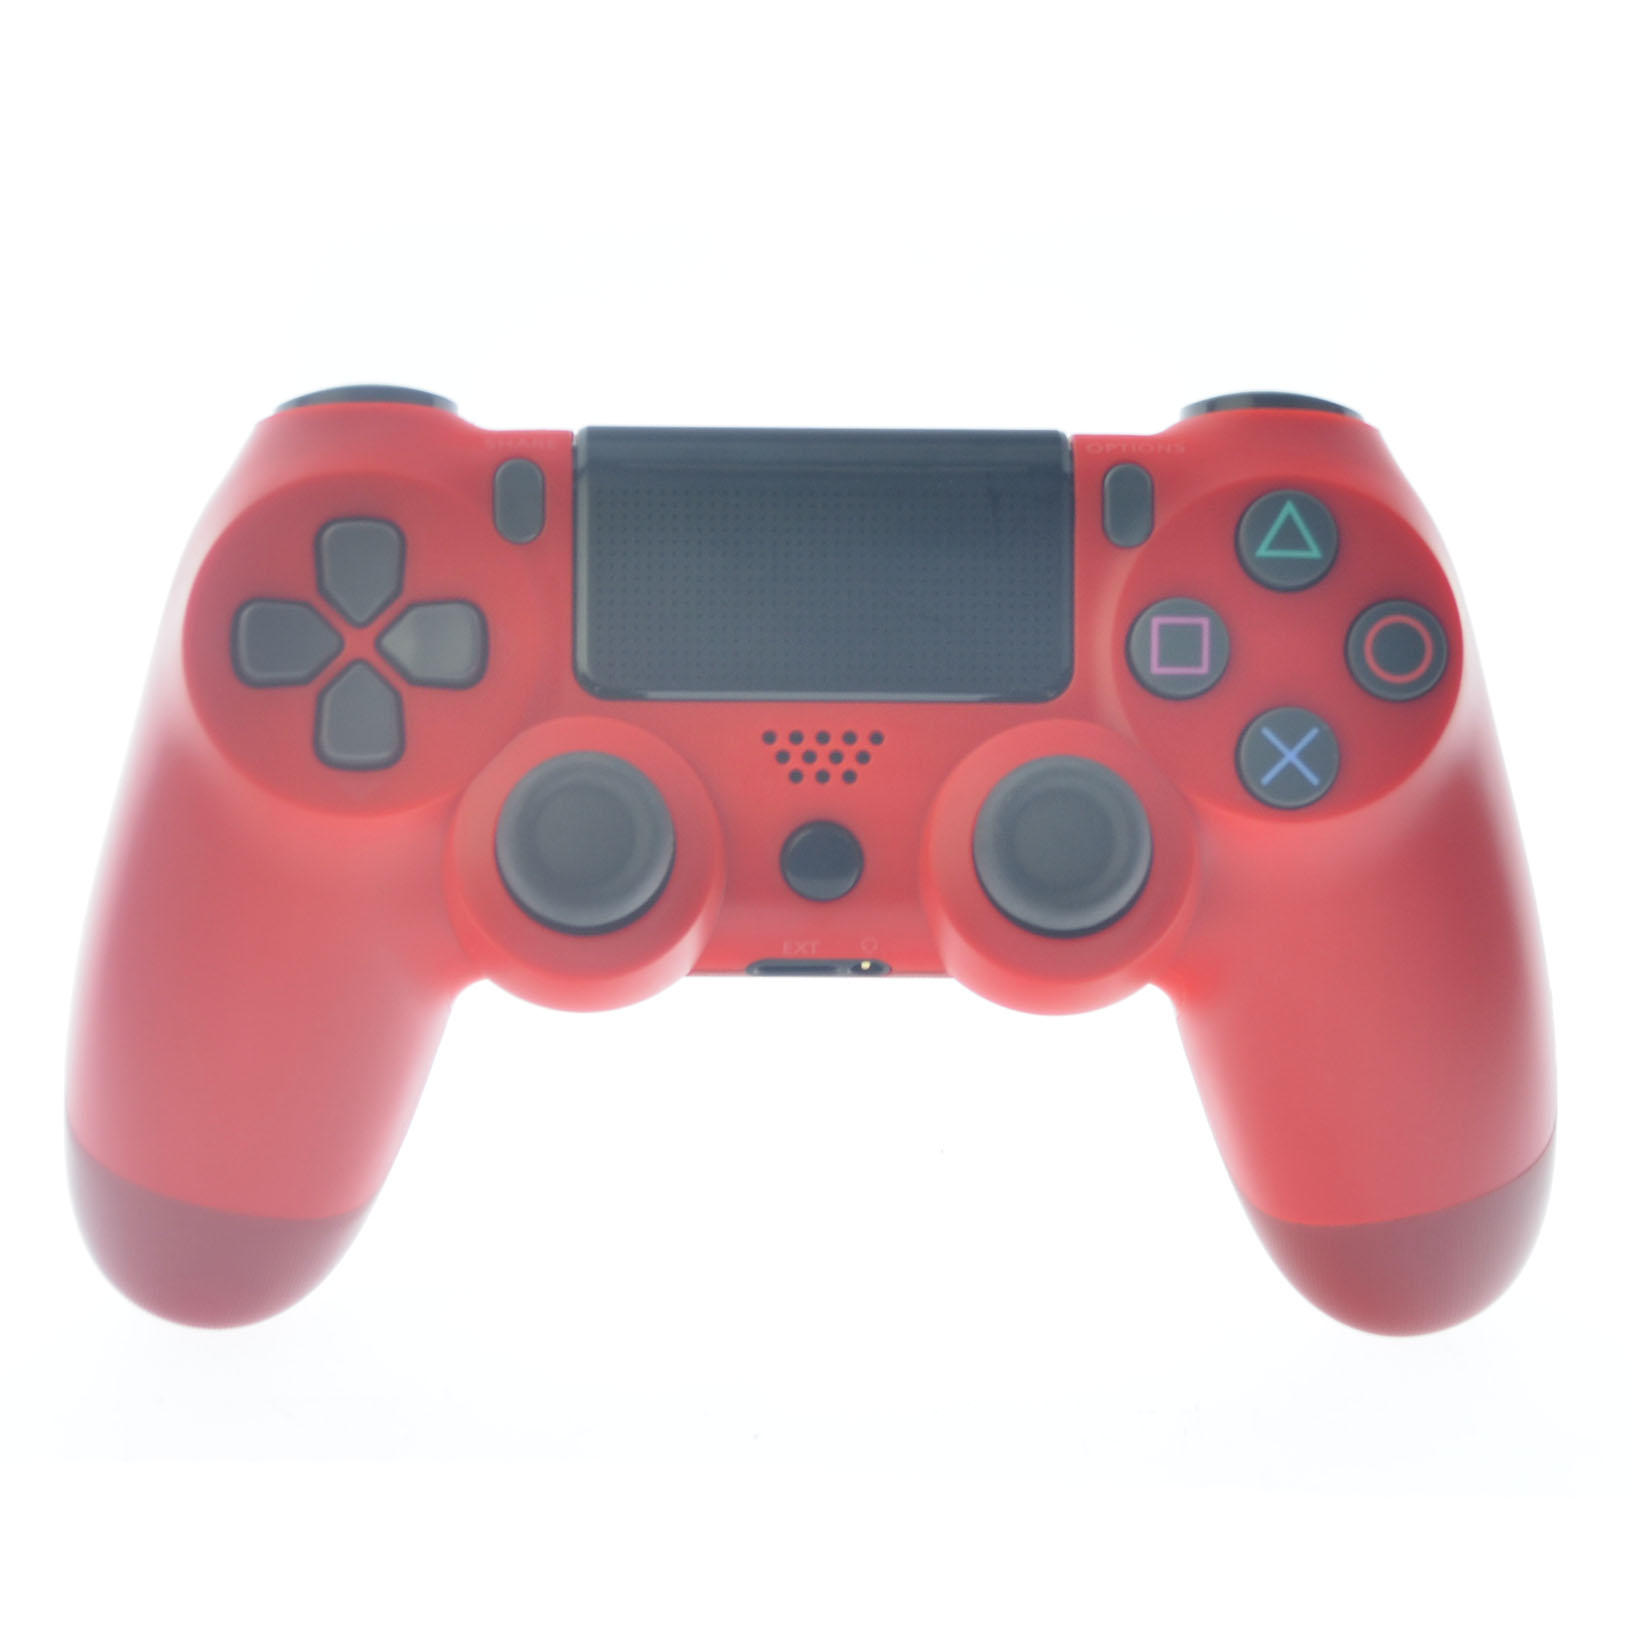 New PS4 Wireless Bluetooth Touch screen DualShock ...Ps4 Controller Touch Screen